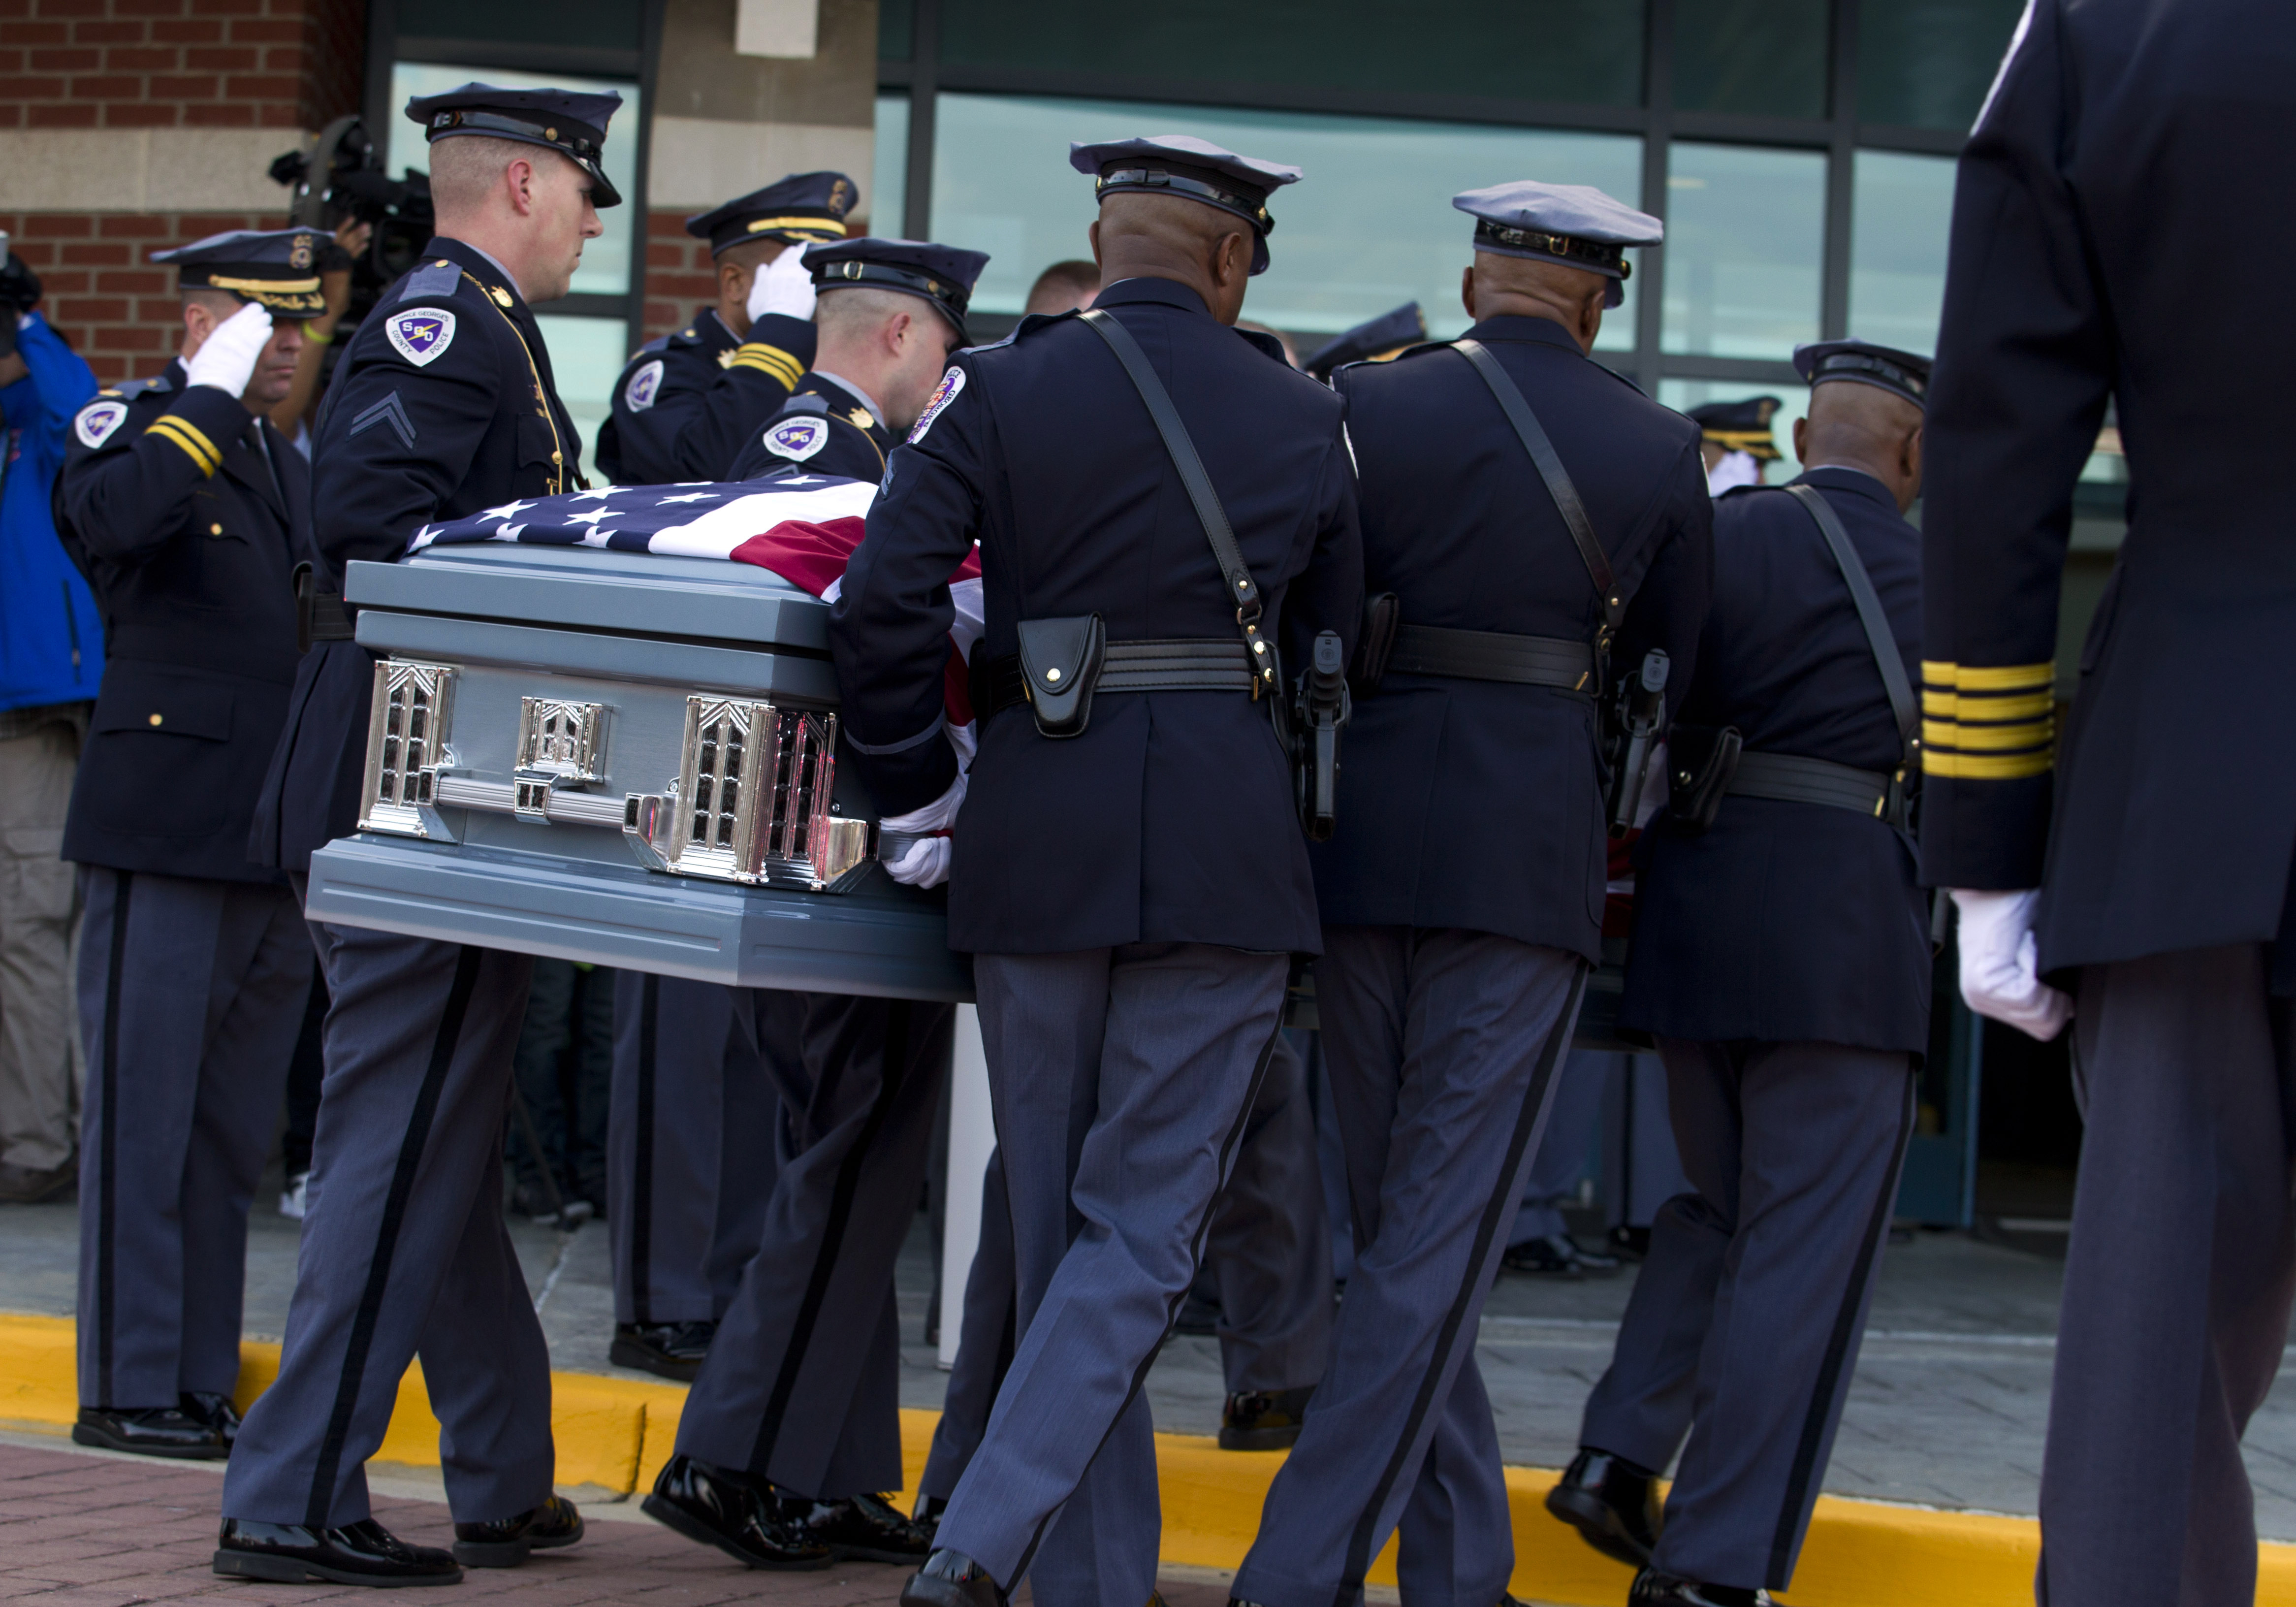 Thousands gather to mourn Md. officer killed in police station gunfight